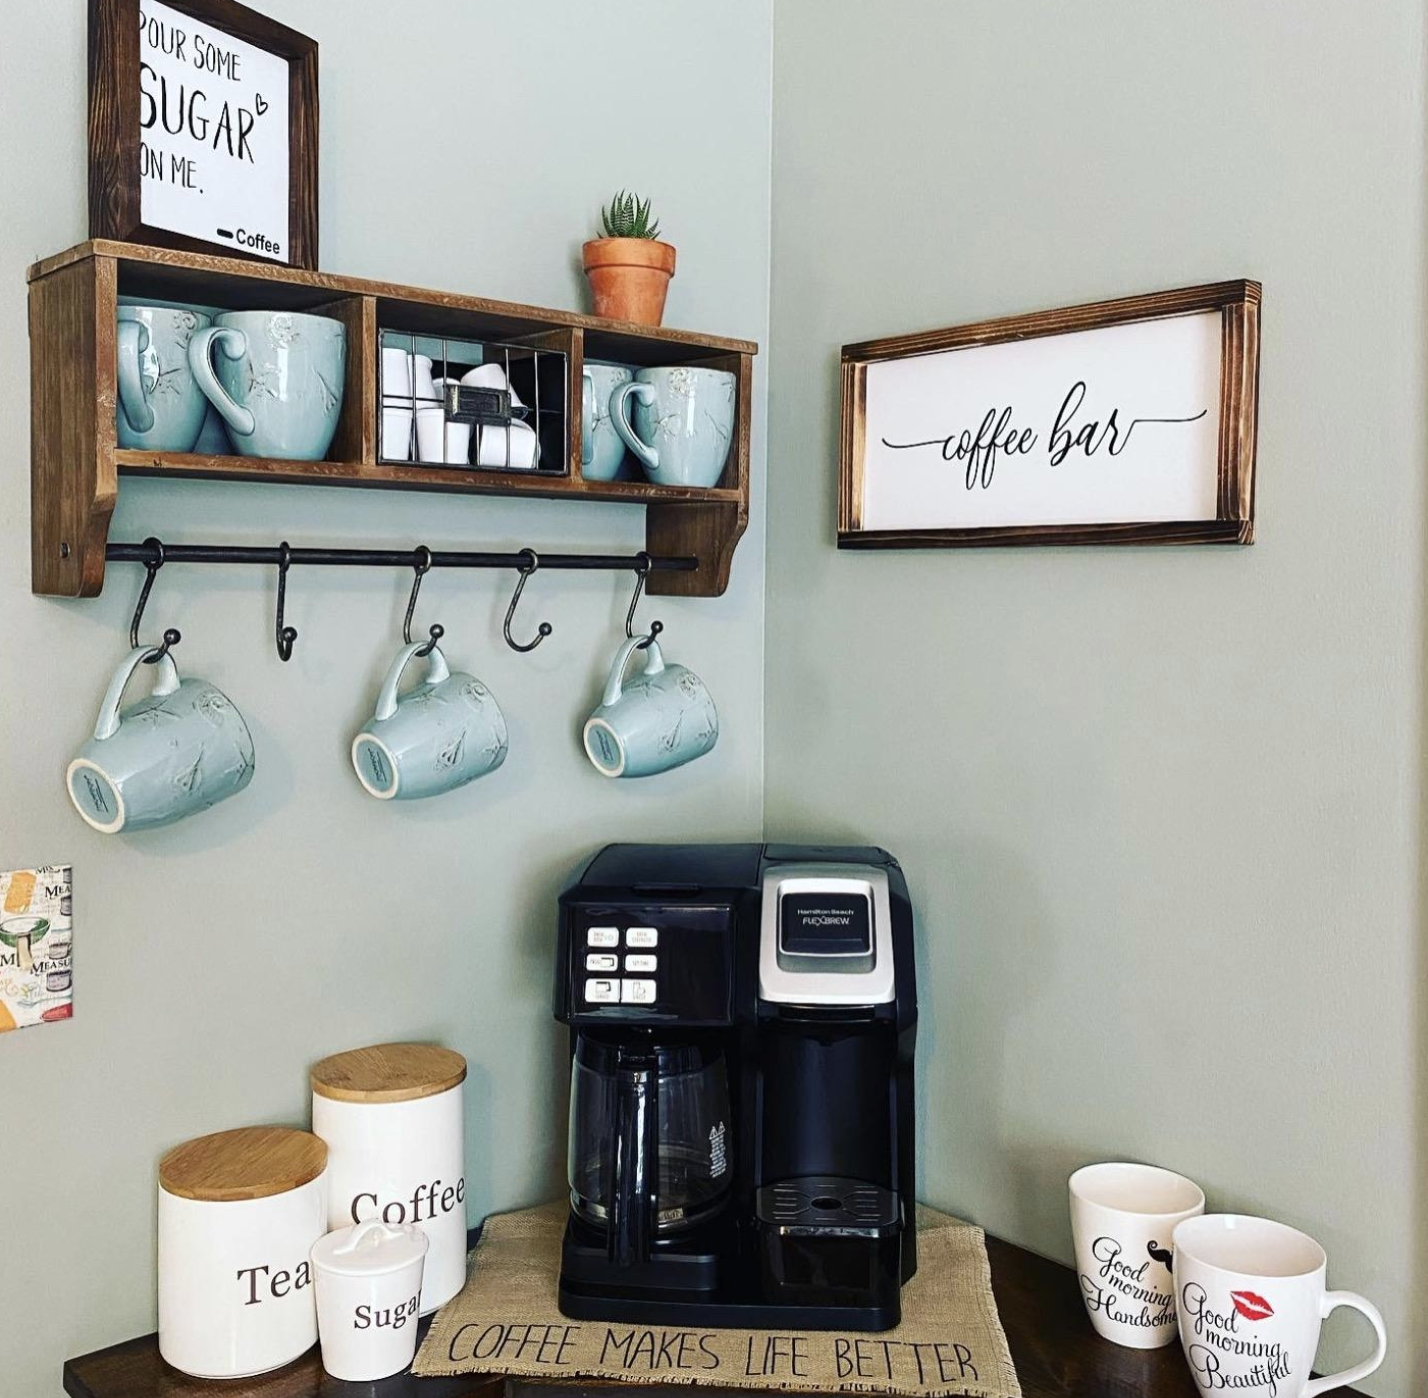 Reviewer image wooden shelf with three compartments holding mugs and K-cups, plus a bar with hooks for additional mug storage